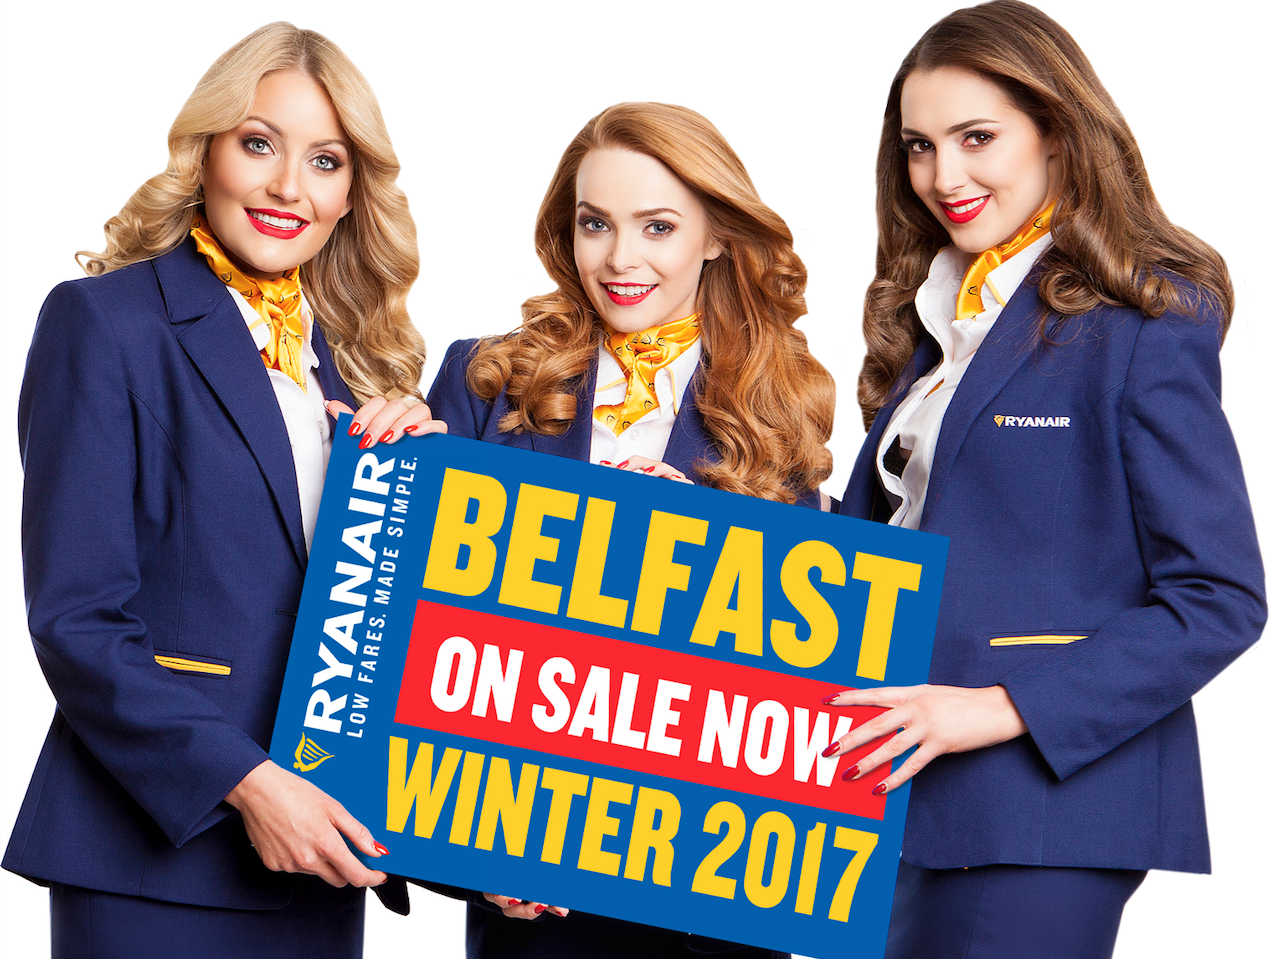 Ryanair launches Belfast Winter 2017 Schedule